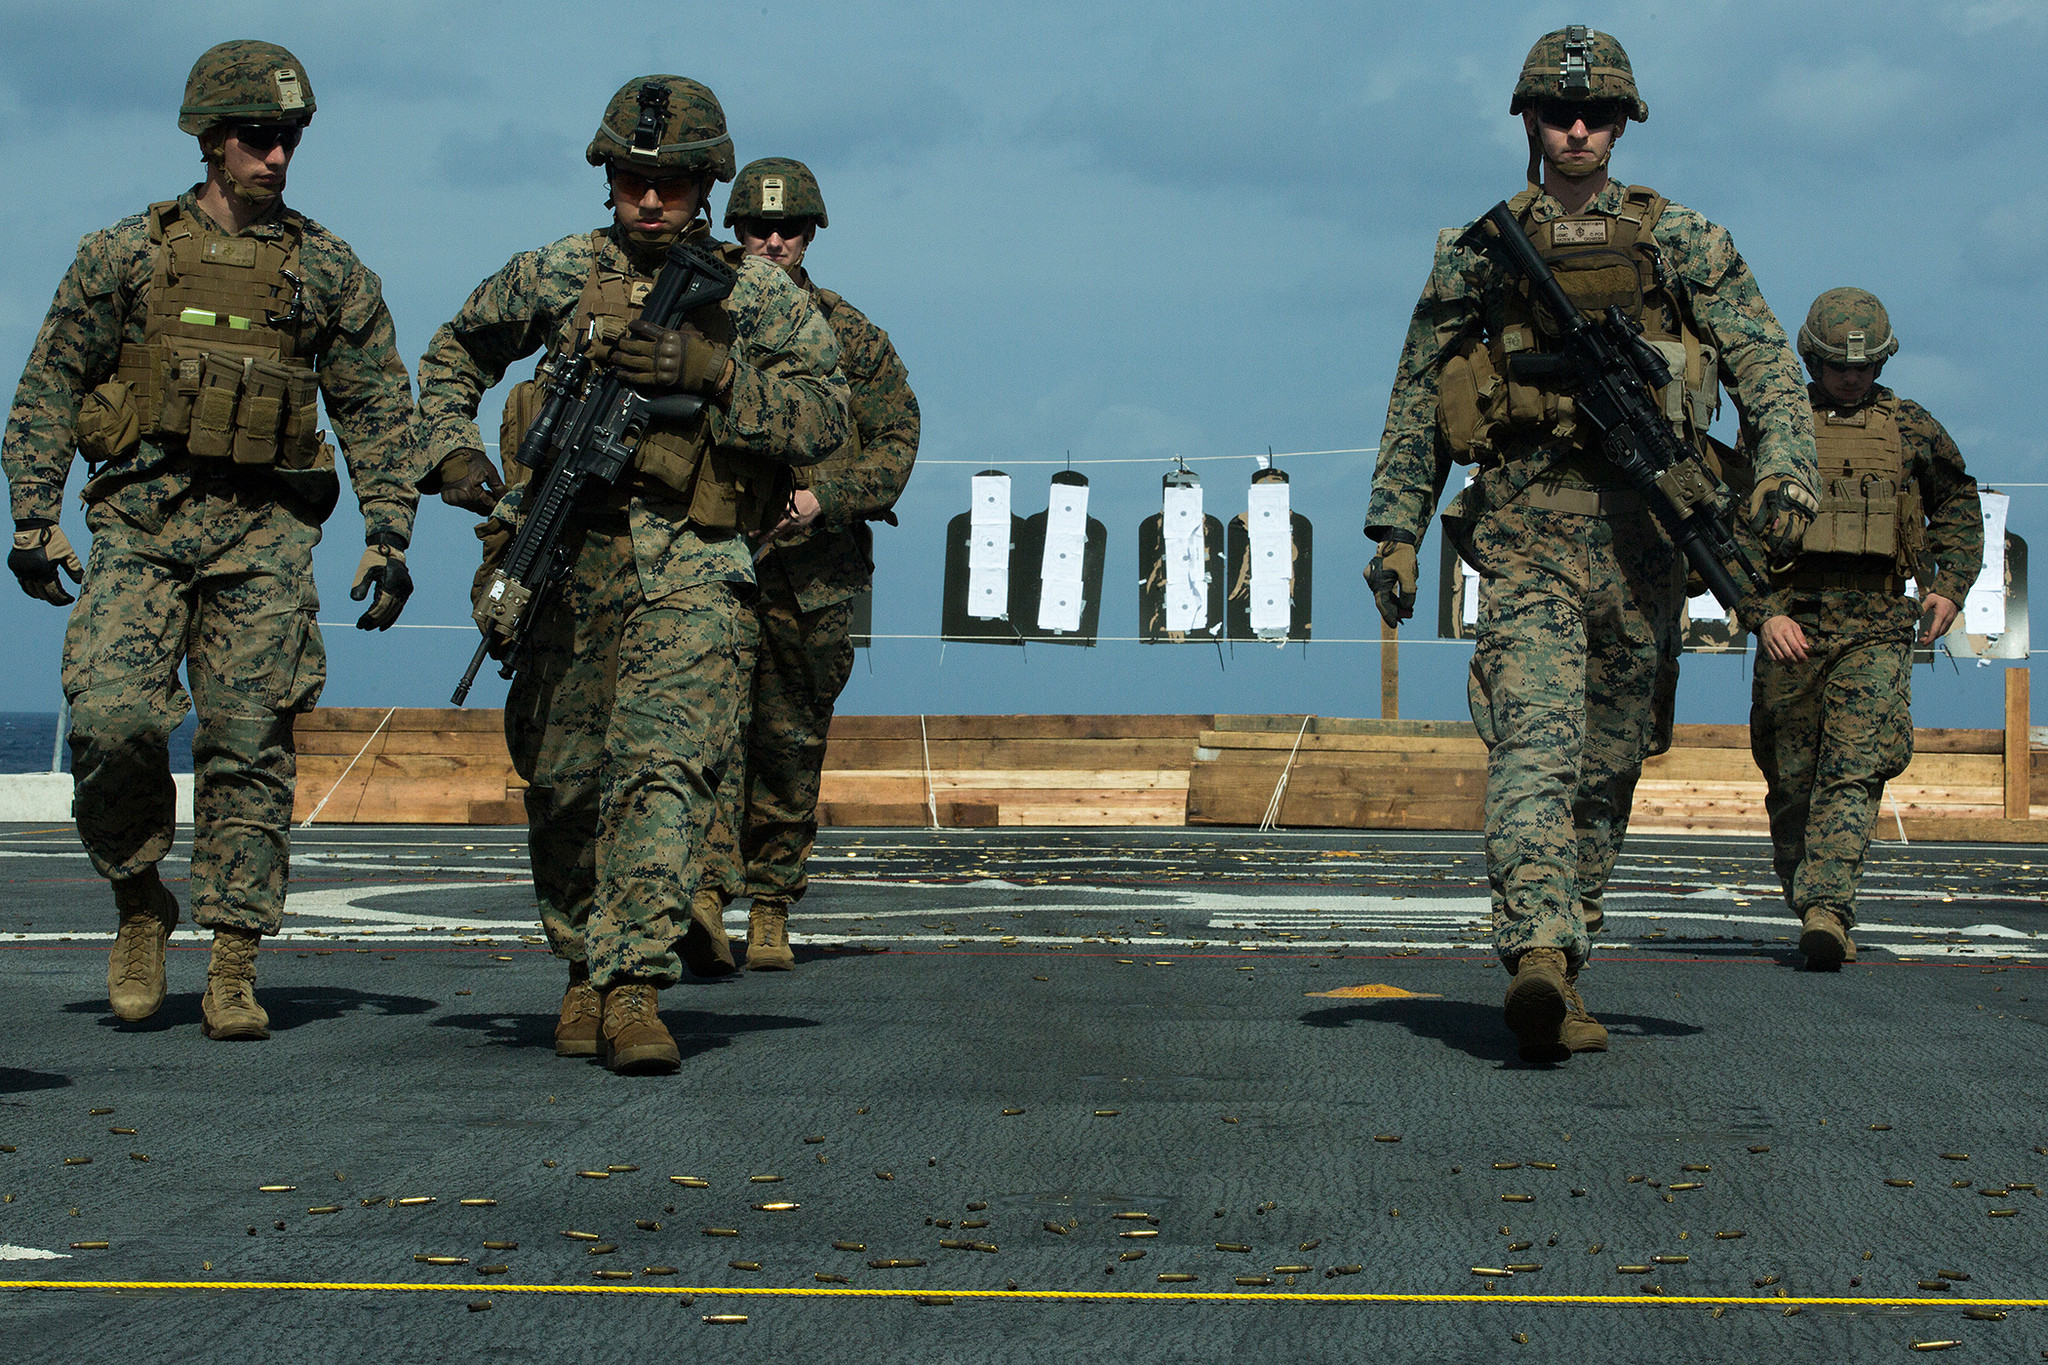 Marines walk back to the firing line during marksmanship training atop the flight deck of the amphibious transport dock USS Green Bay (LPD 20), in the East China Sea, Feb. 2, 2019. (Lance Cpl. Cameron E. Parks/Marine Corps)